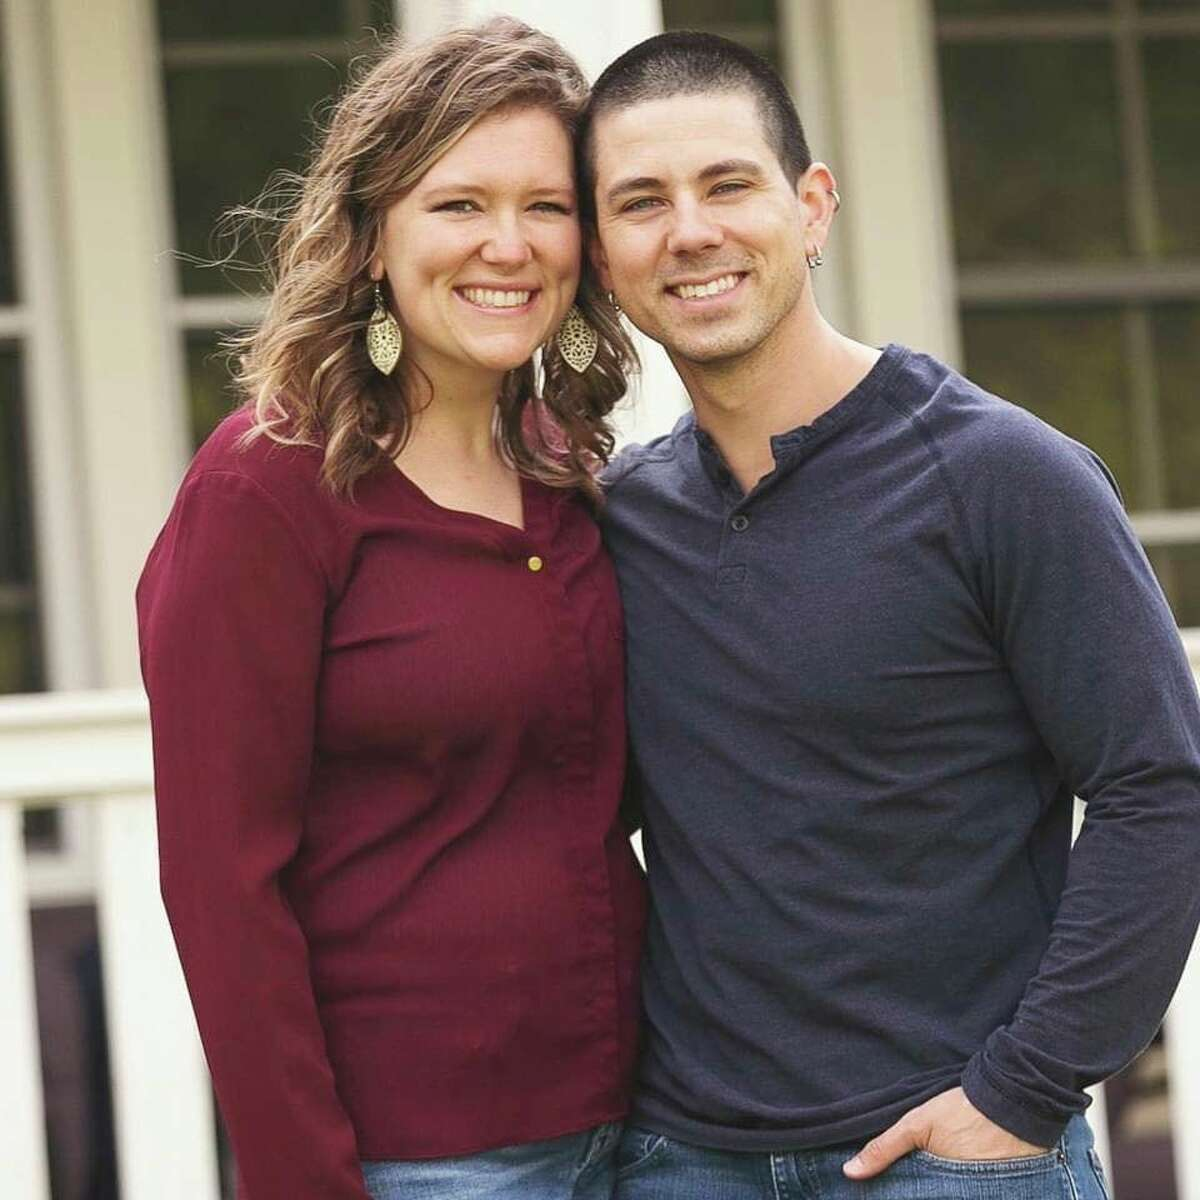 Pictured are Shannon and Patrick McElgunn, co-owners-Grove Tea Lounge. (Provided photo)